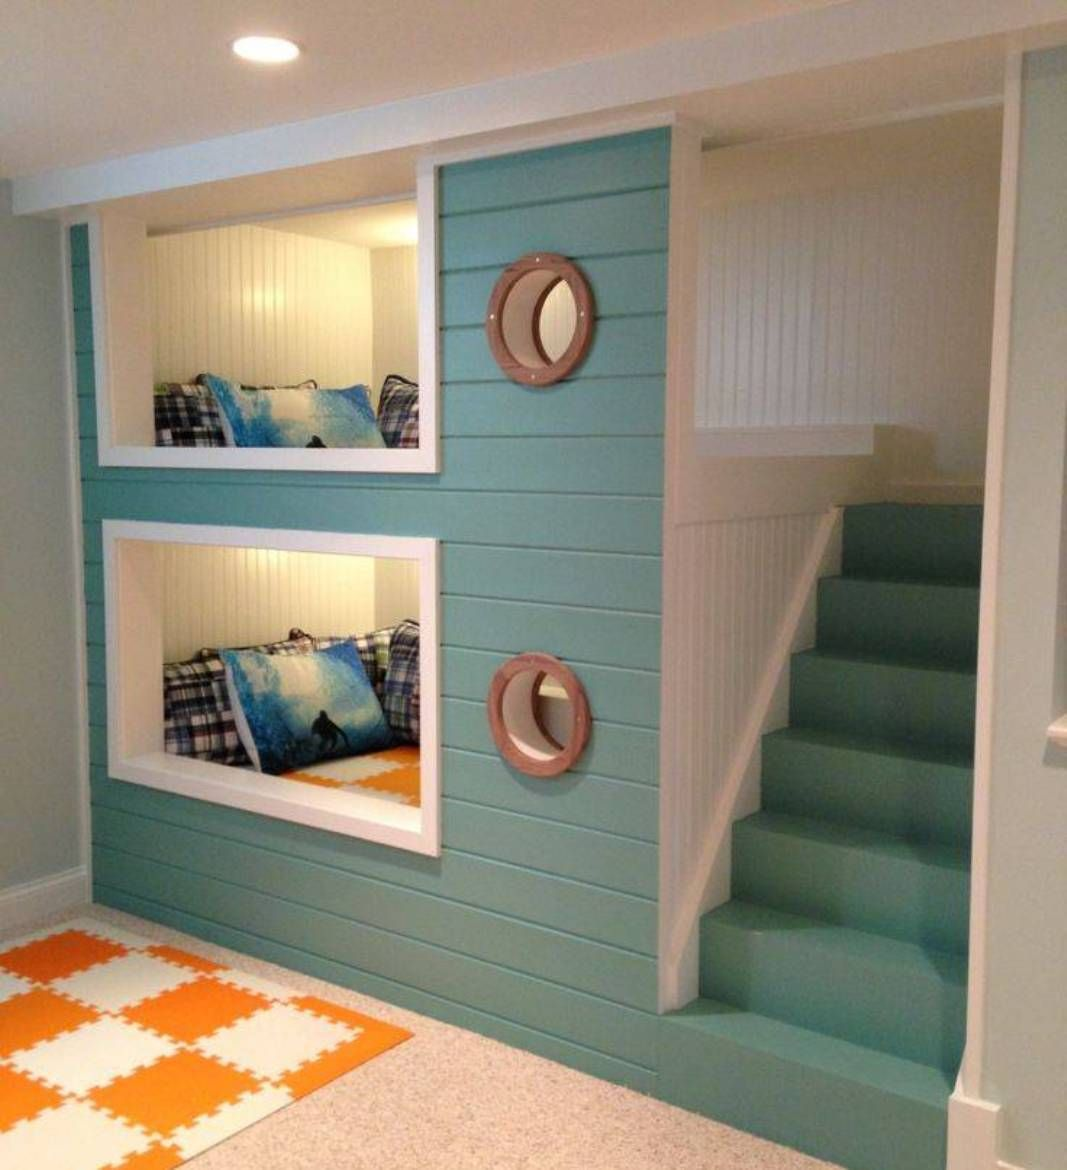 Space Saving Bunk Beds For Small Kids Room : Adorable BuiltIn SpaceSaving  Bunk Bed Design Inspiration With Aqua Painted Staircase And Two Sm.